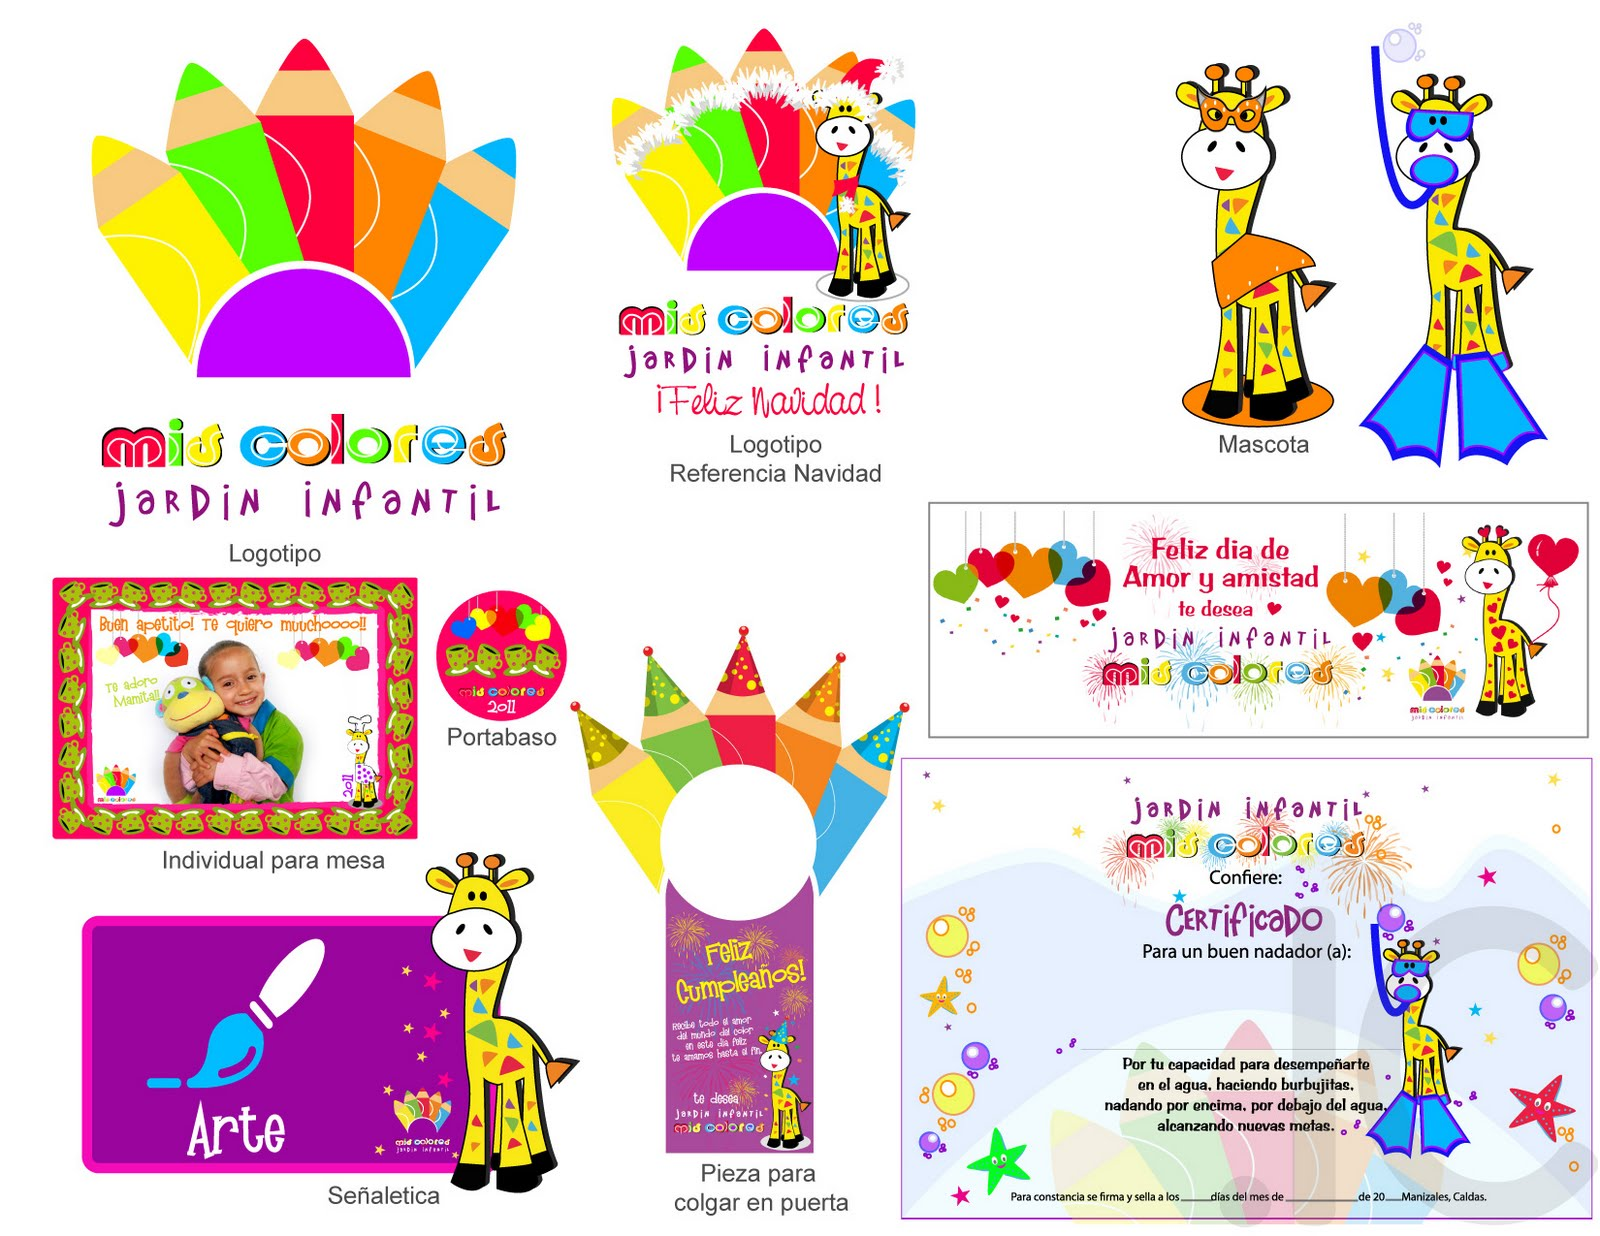 Ic consultores identidad corporativa jardin infantil mis for Jardin 7 colores